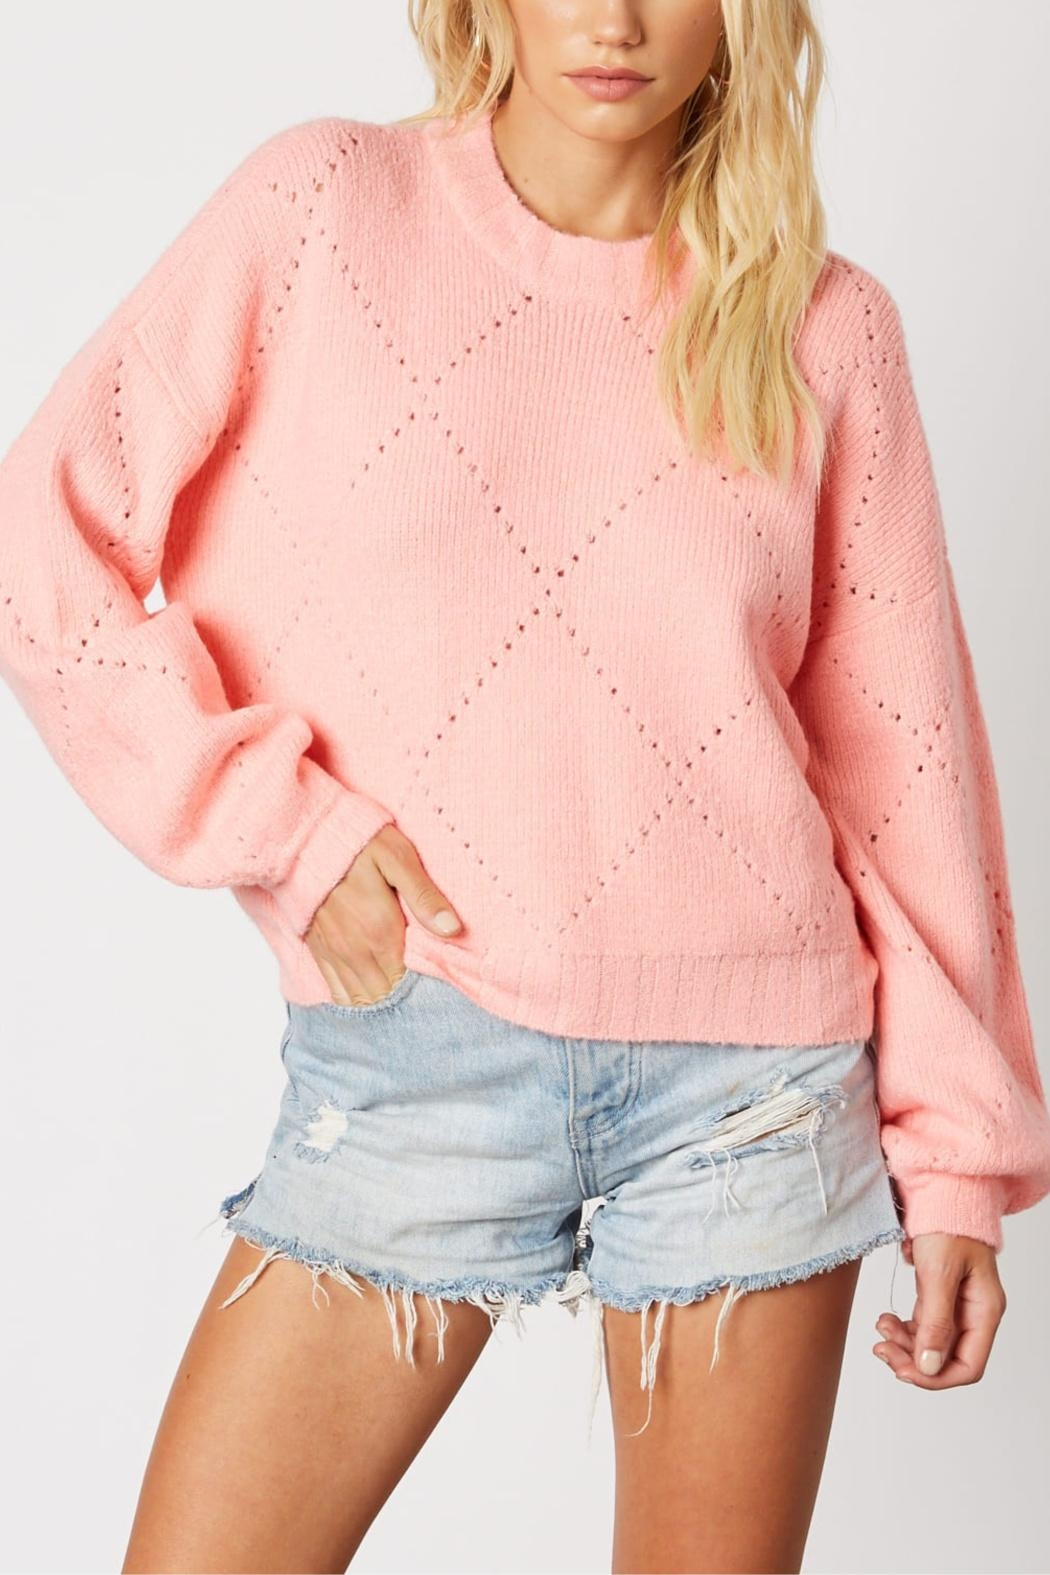 Cotton Candy Cupcake Icing Sweater - Main Image